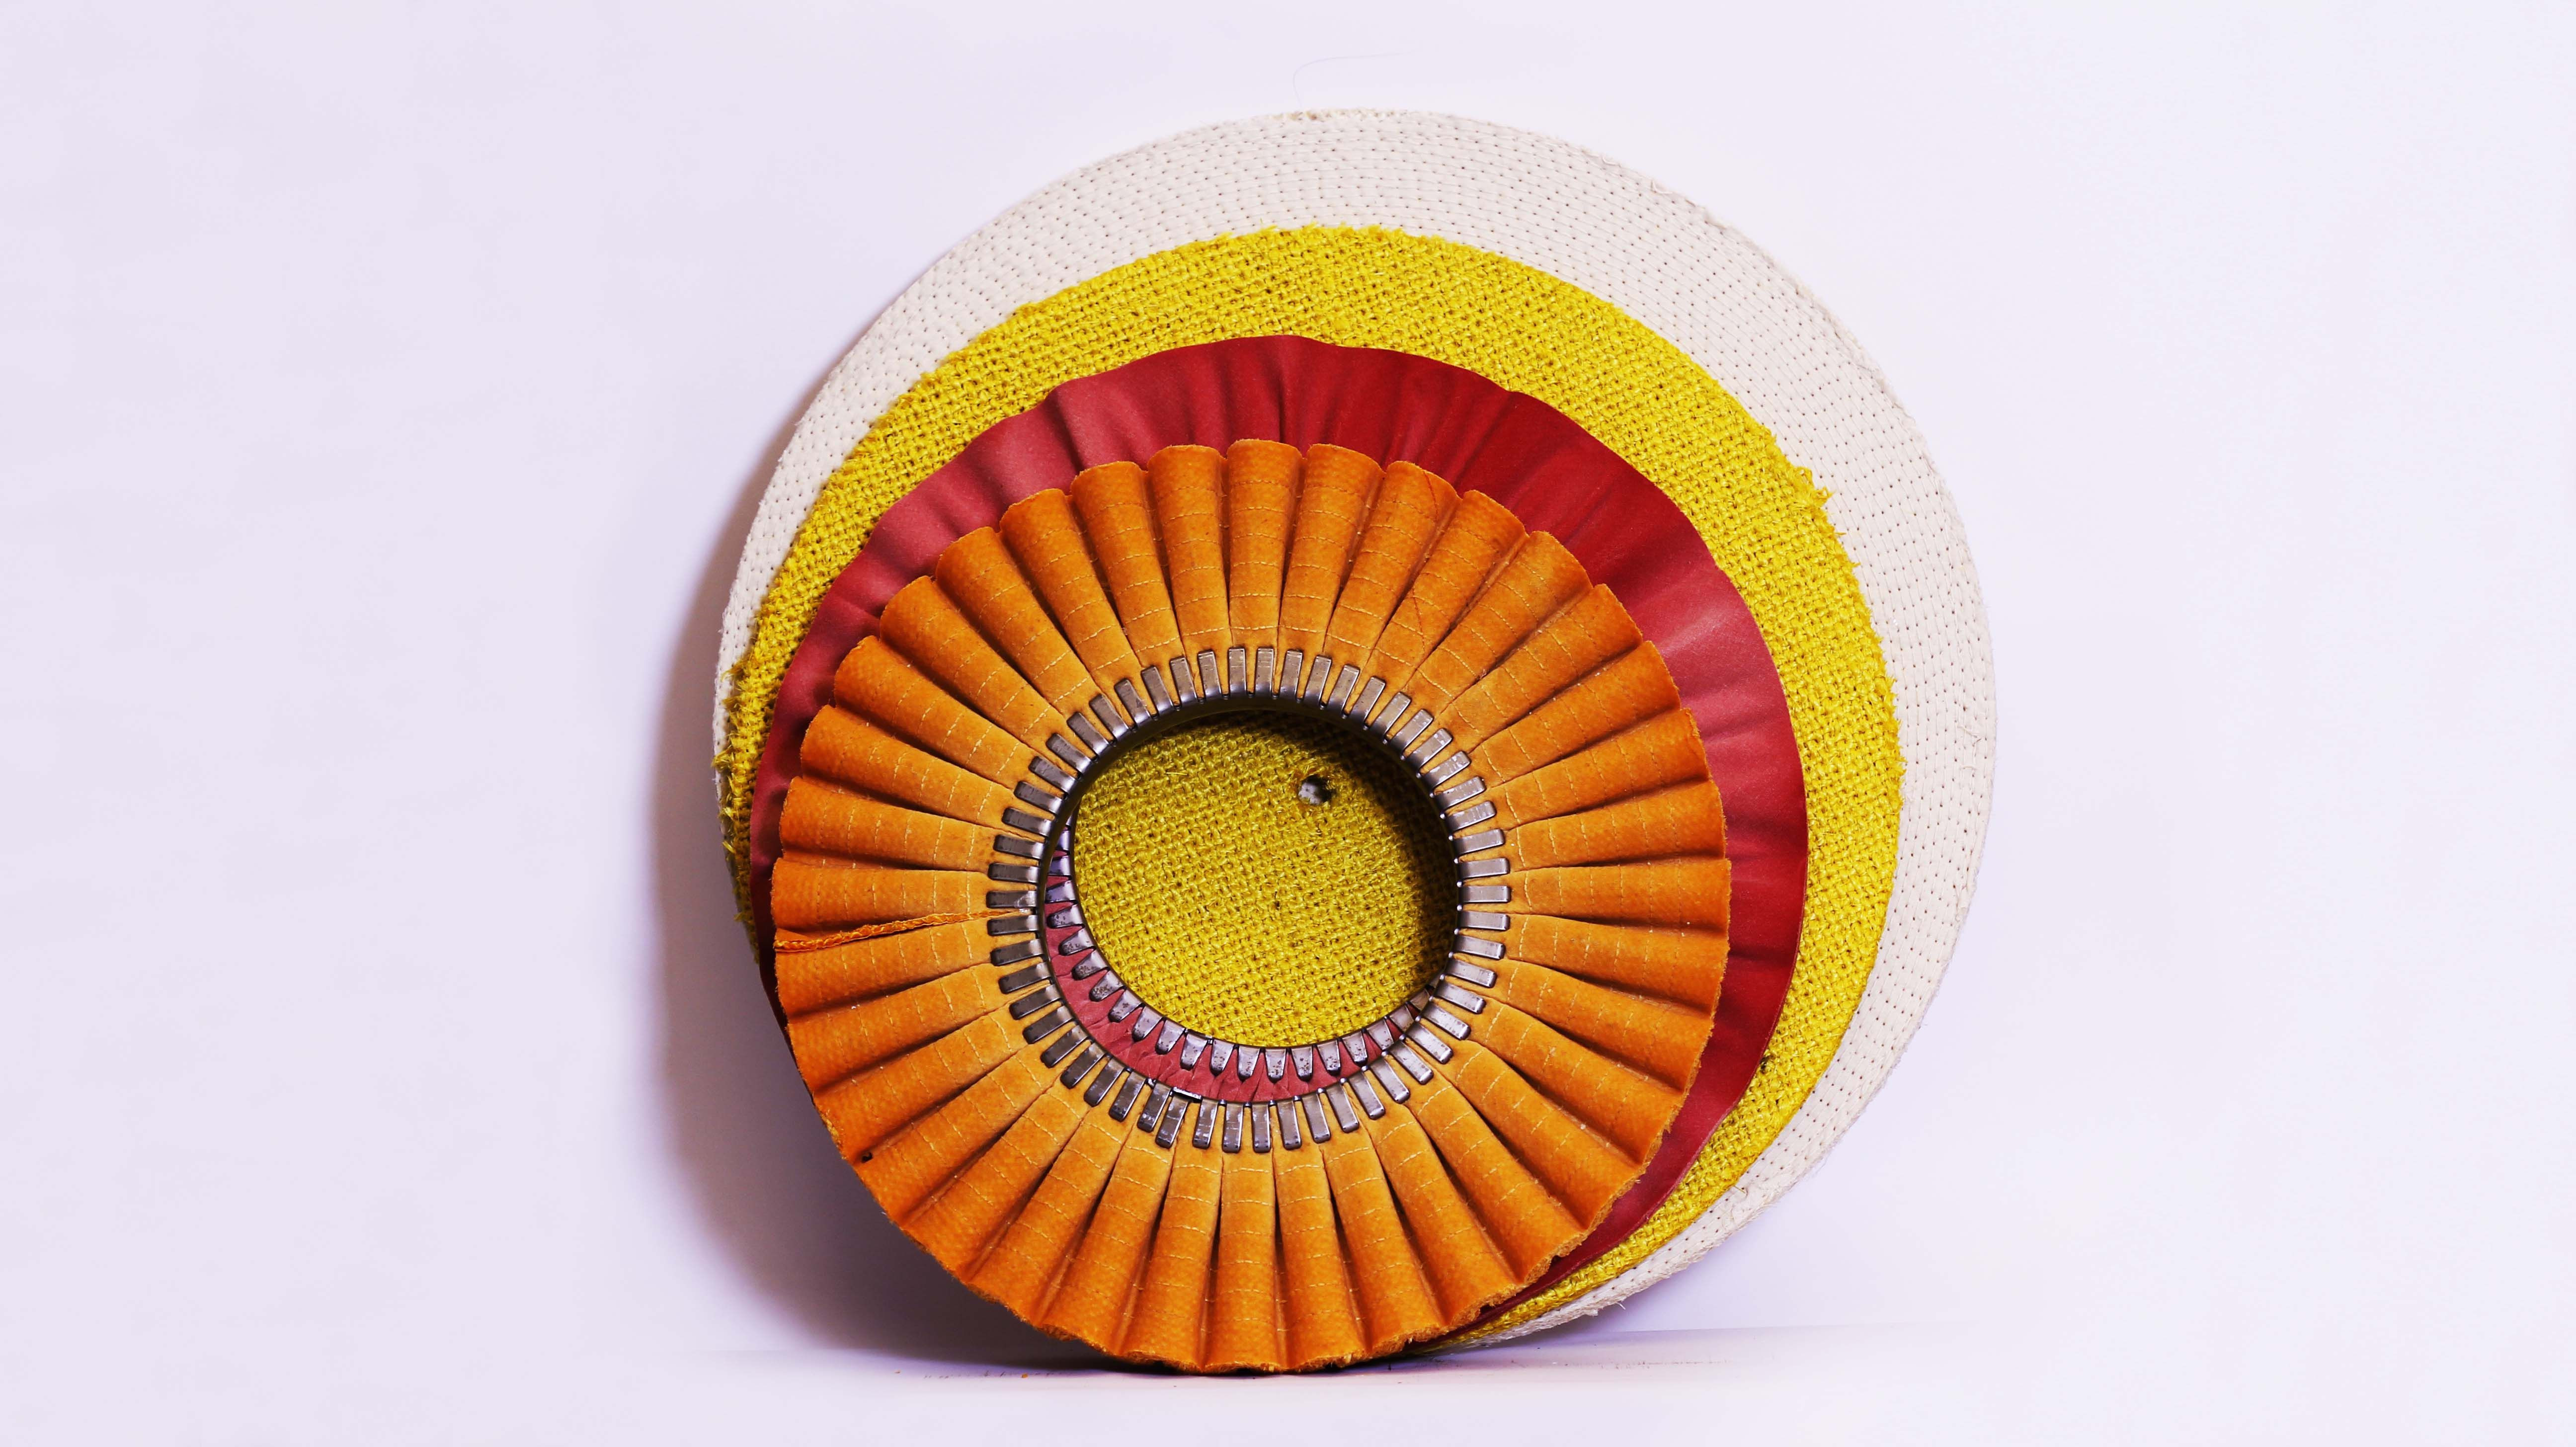 Buff Wheel, Grinding Wheel, Sisal Buff